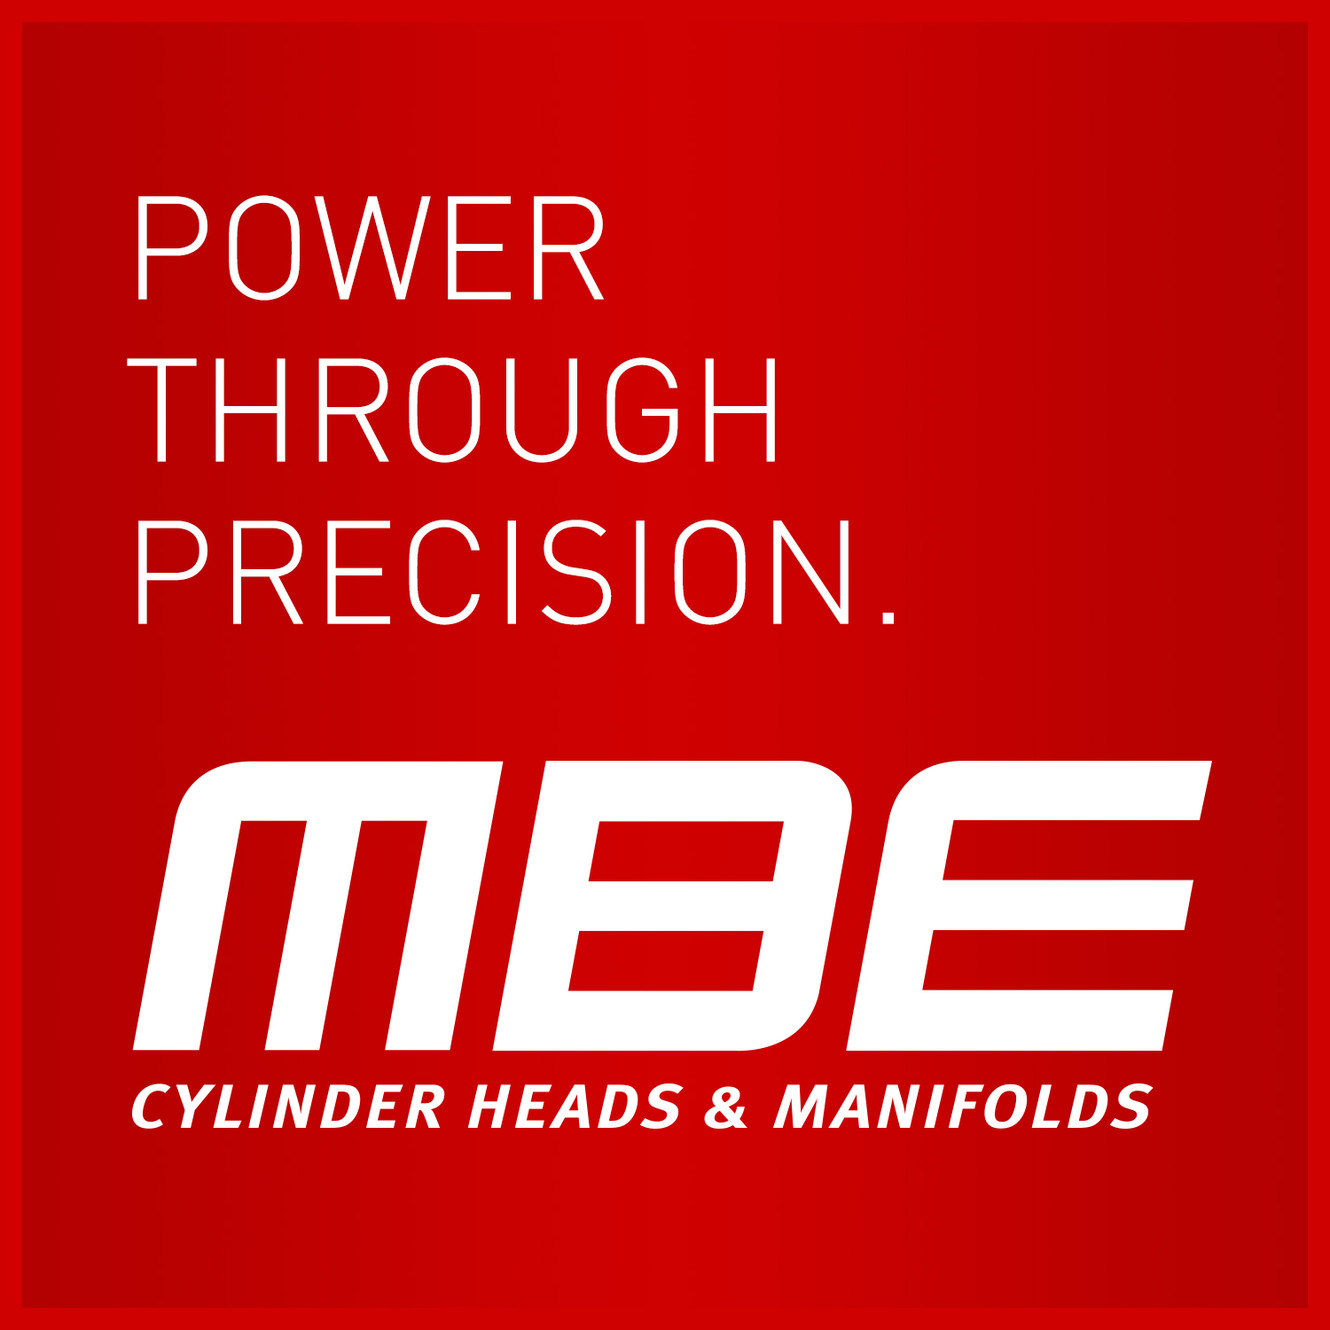 MBE Cylinder Heads & Manifolds